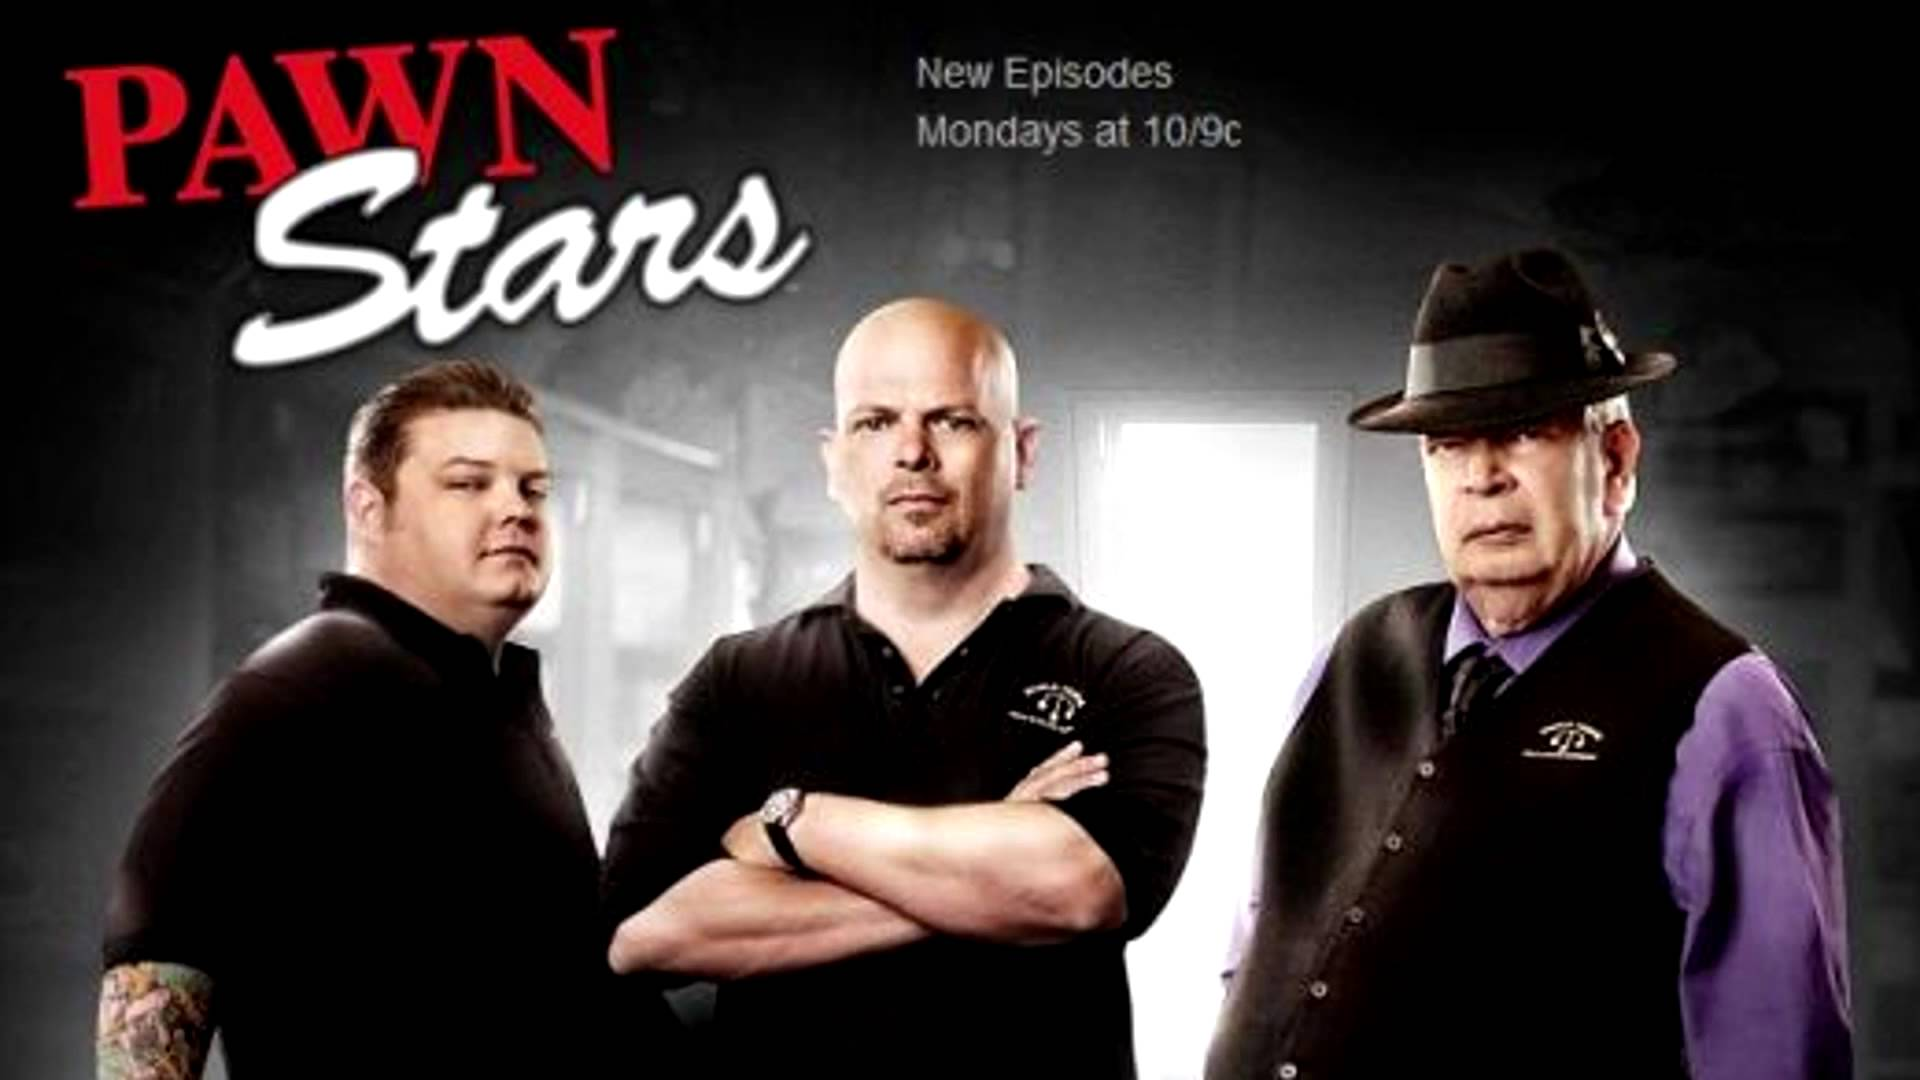 Pawn stars theme song instrumental! Finally!